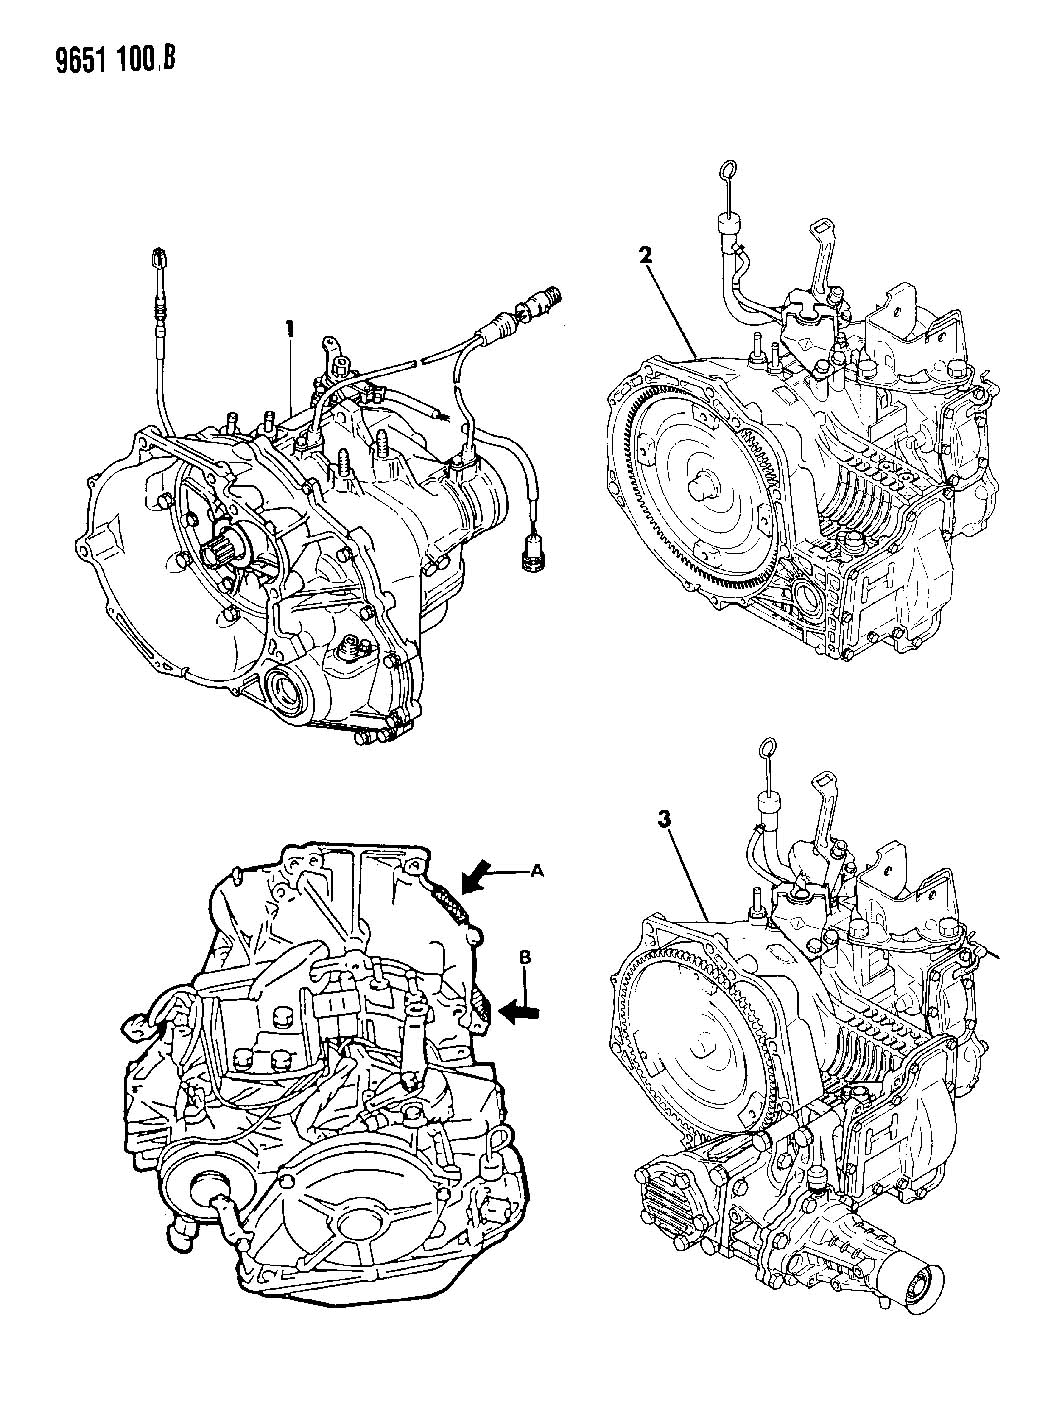 Service manual [Removing Transaxle From A 1992 Eagle